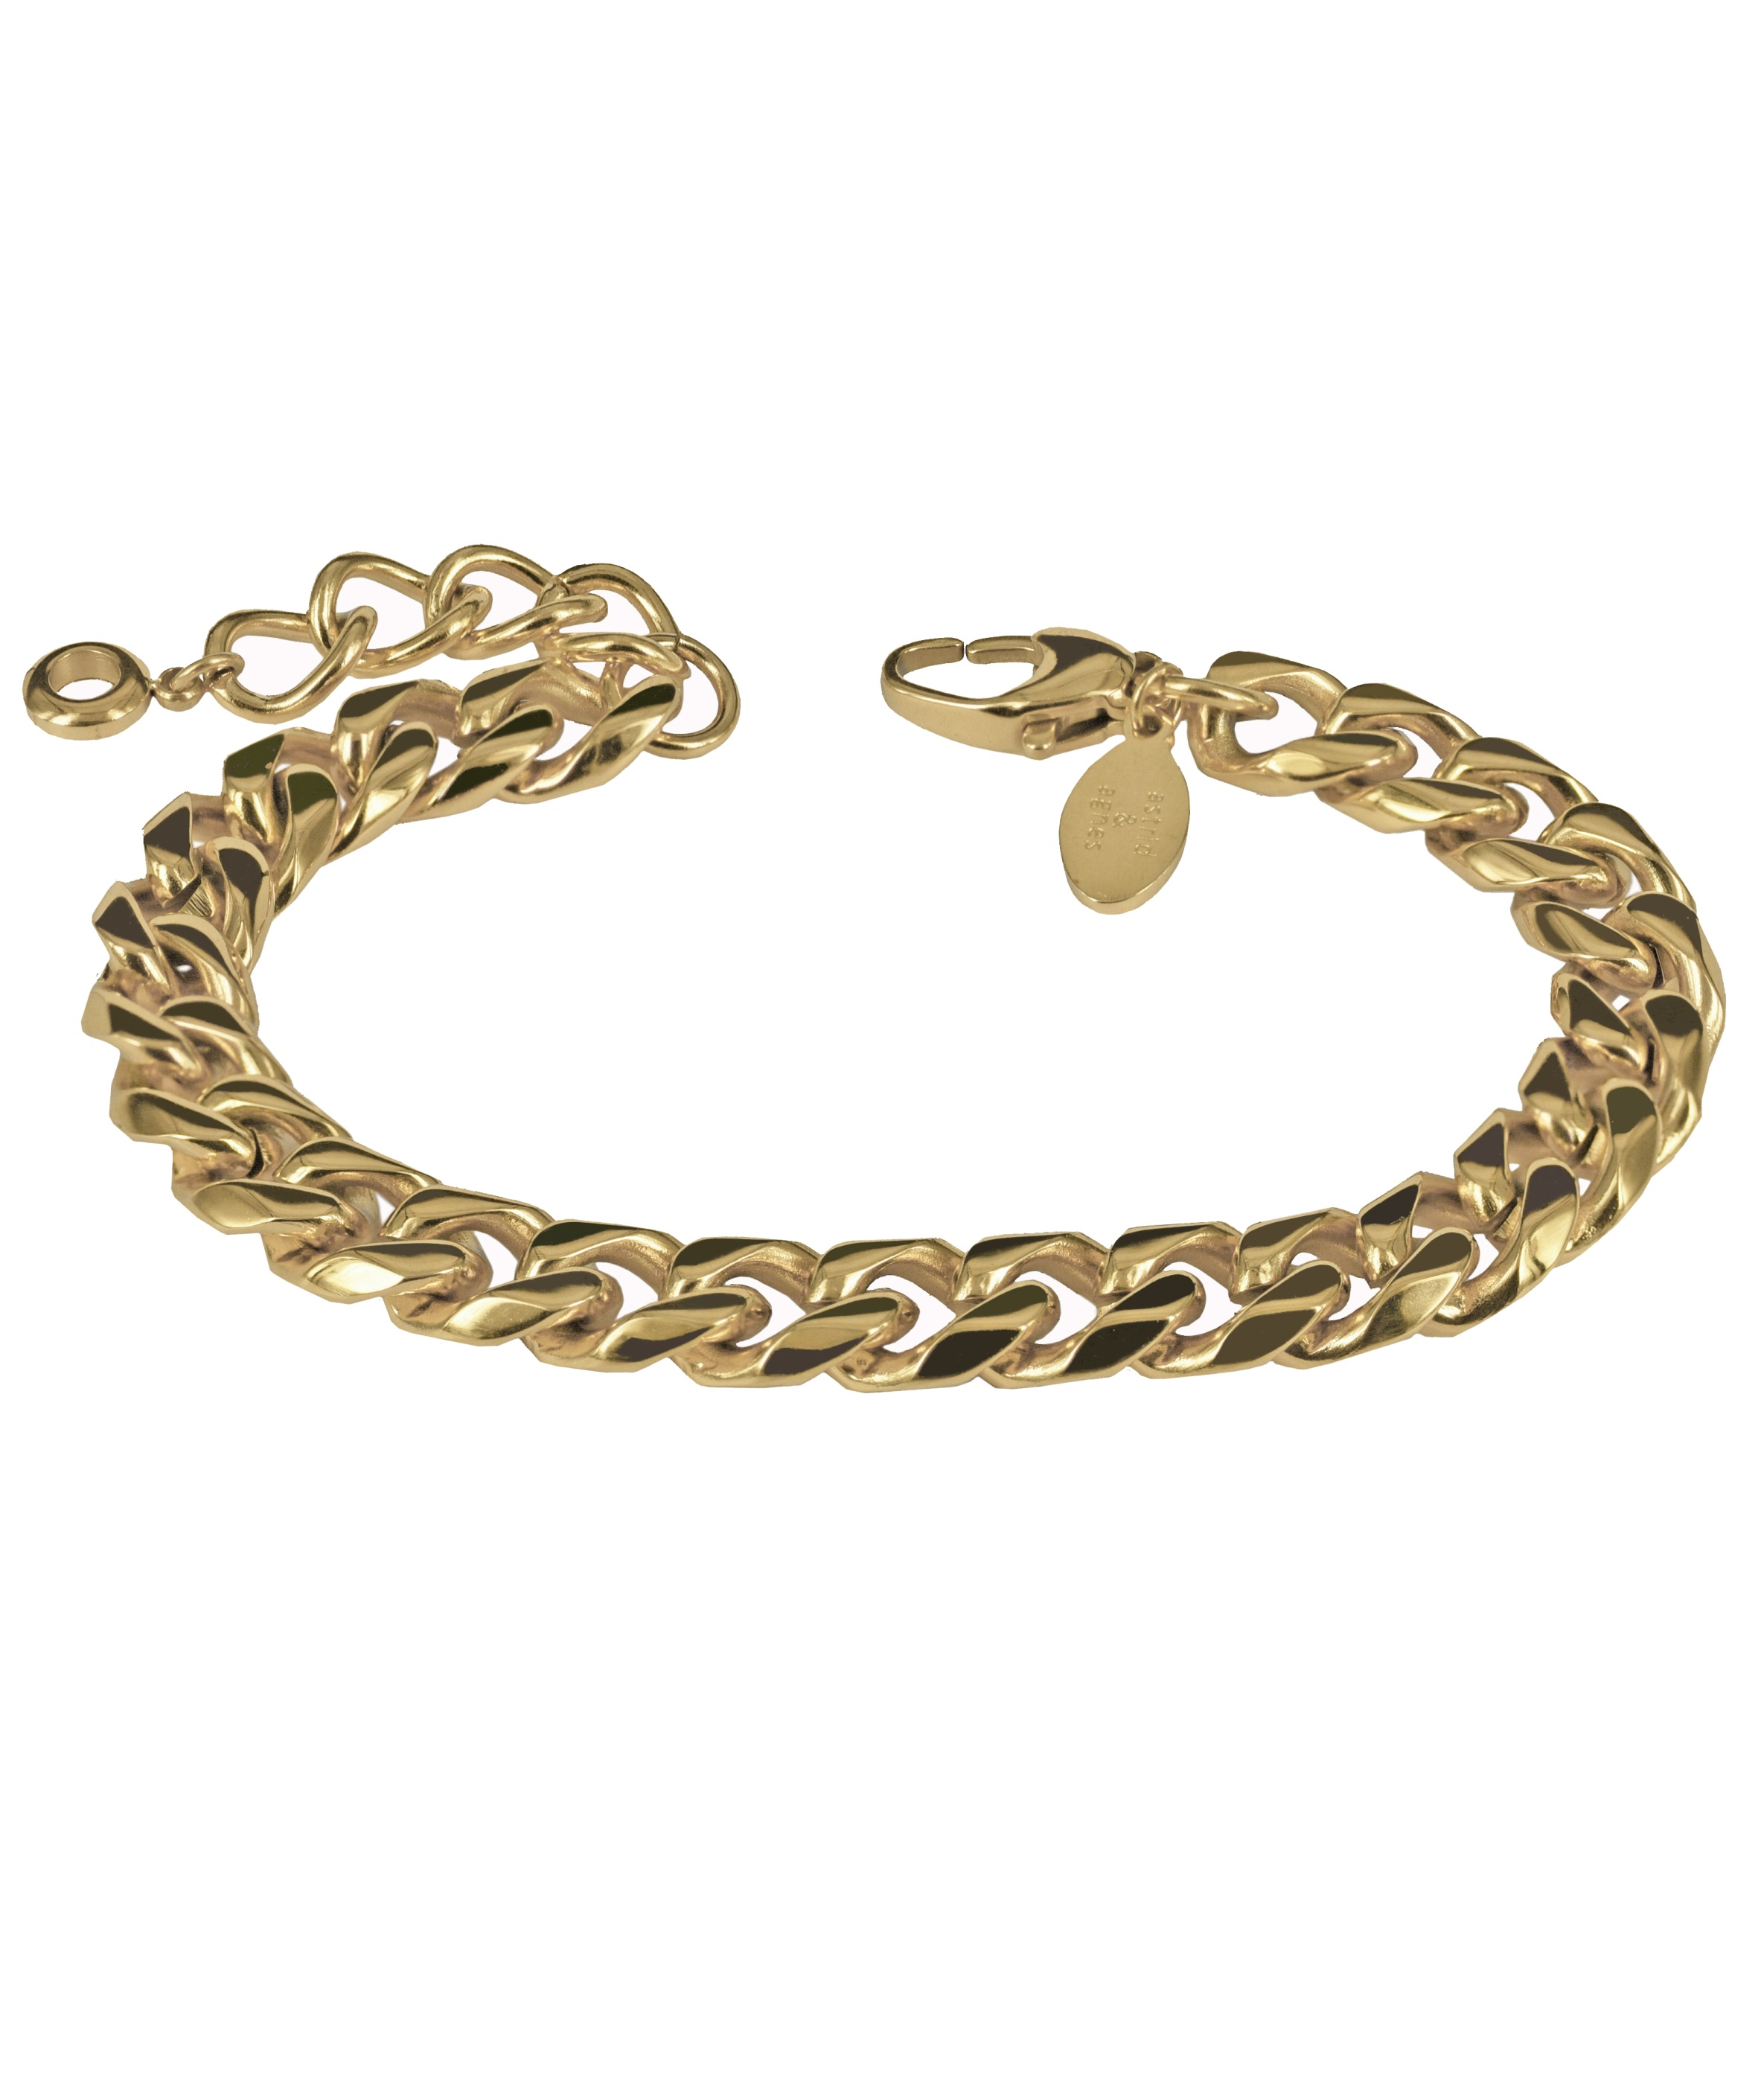 HAILEY-GoldbraceletwebbOK